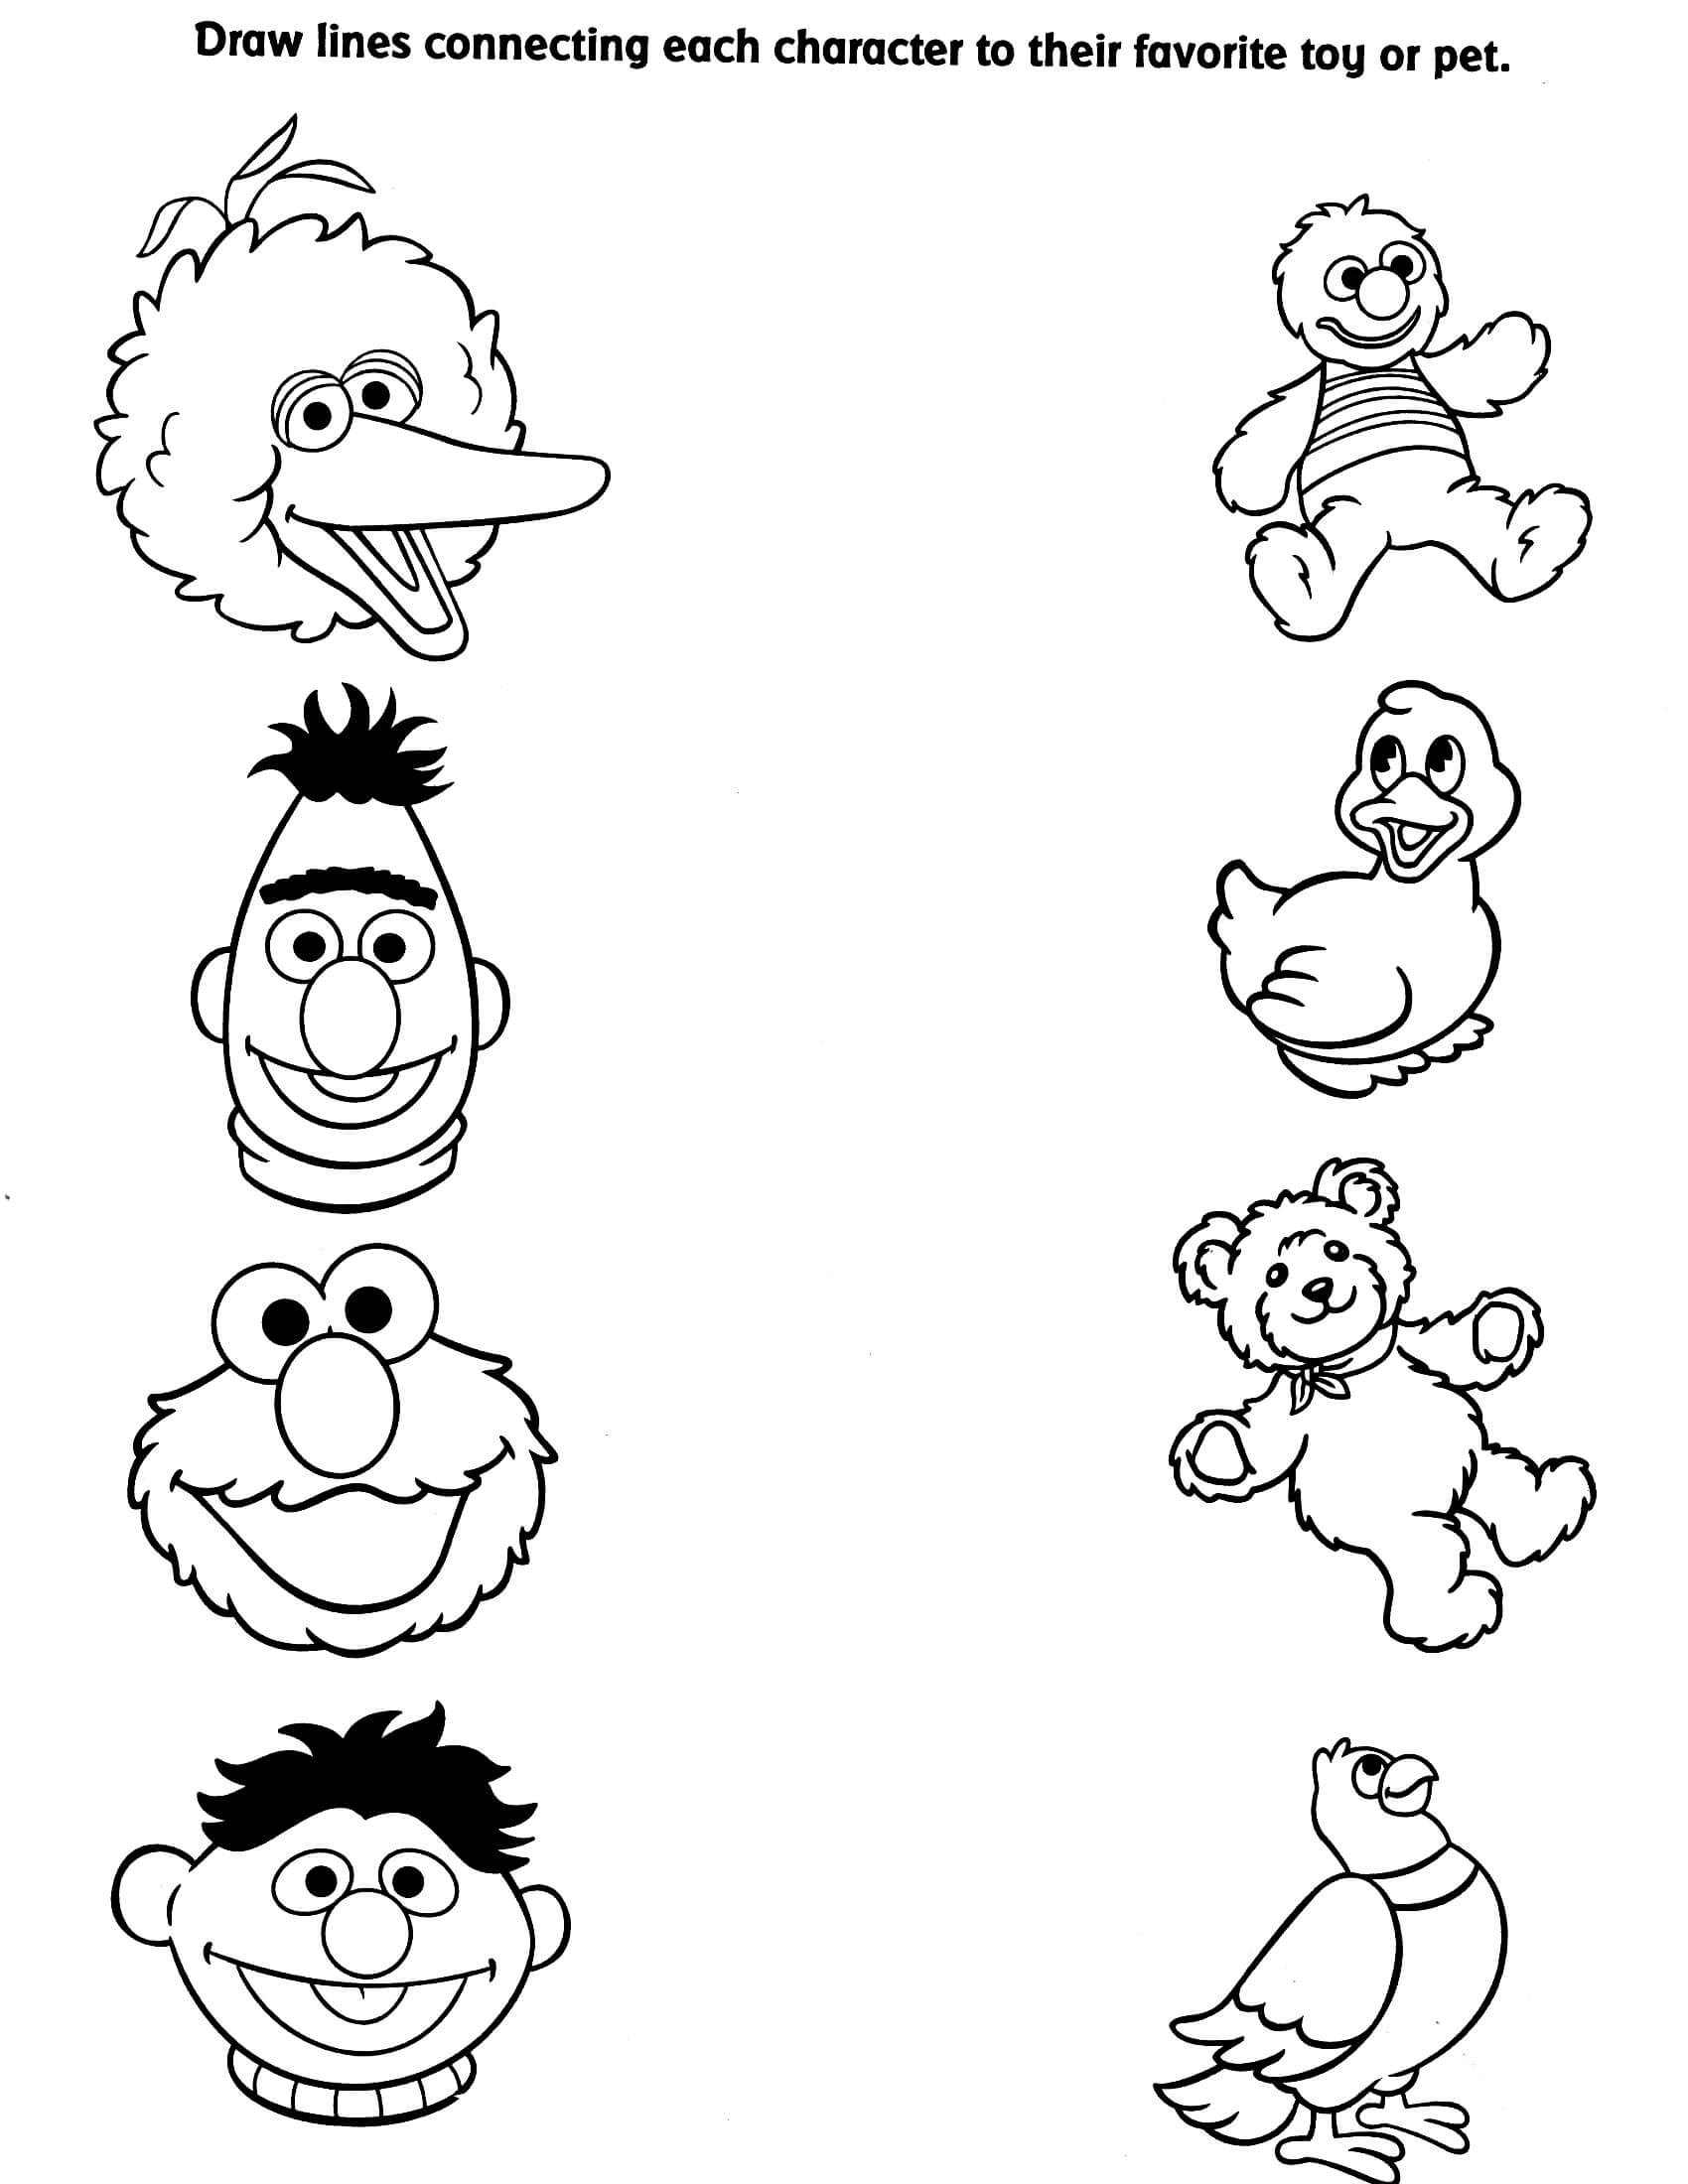 coloring pages of sesame street characters sesame street characters coloring pages to print coloring pages characters street sesame of